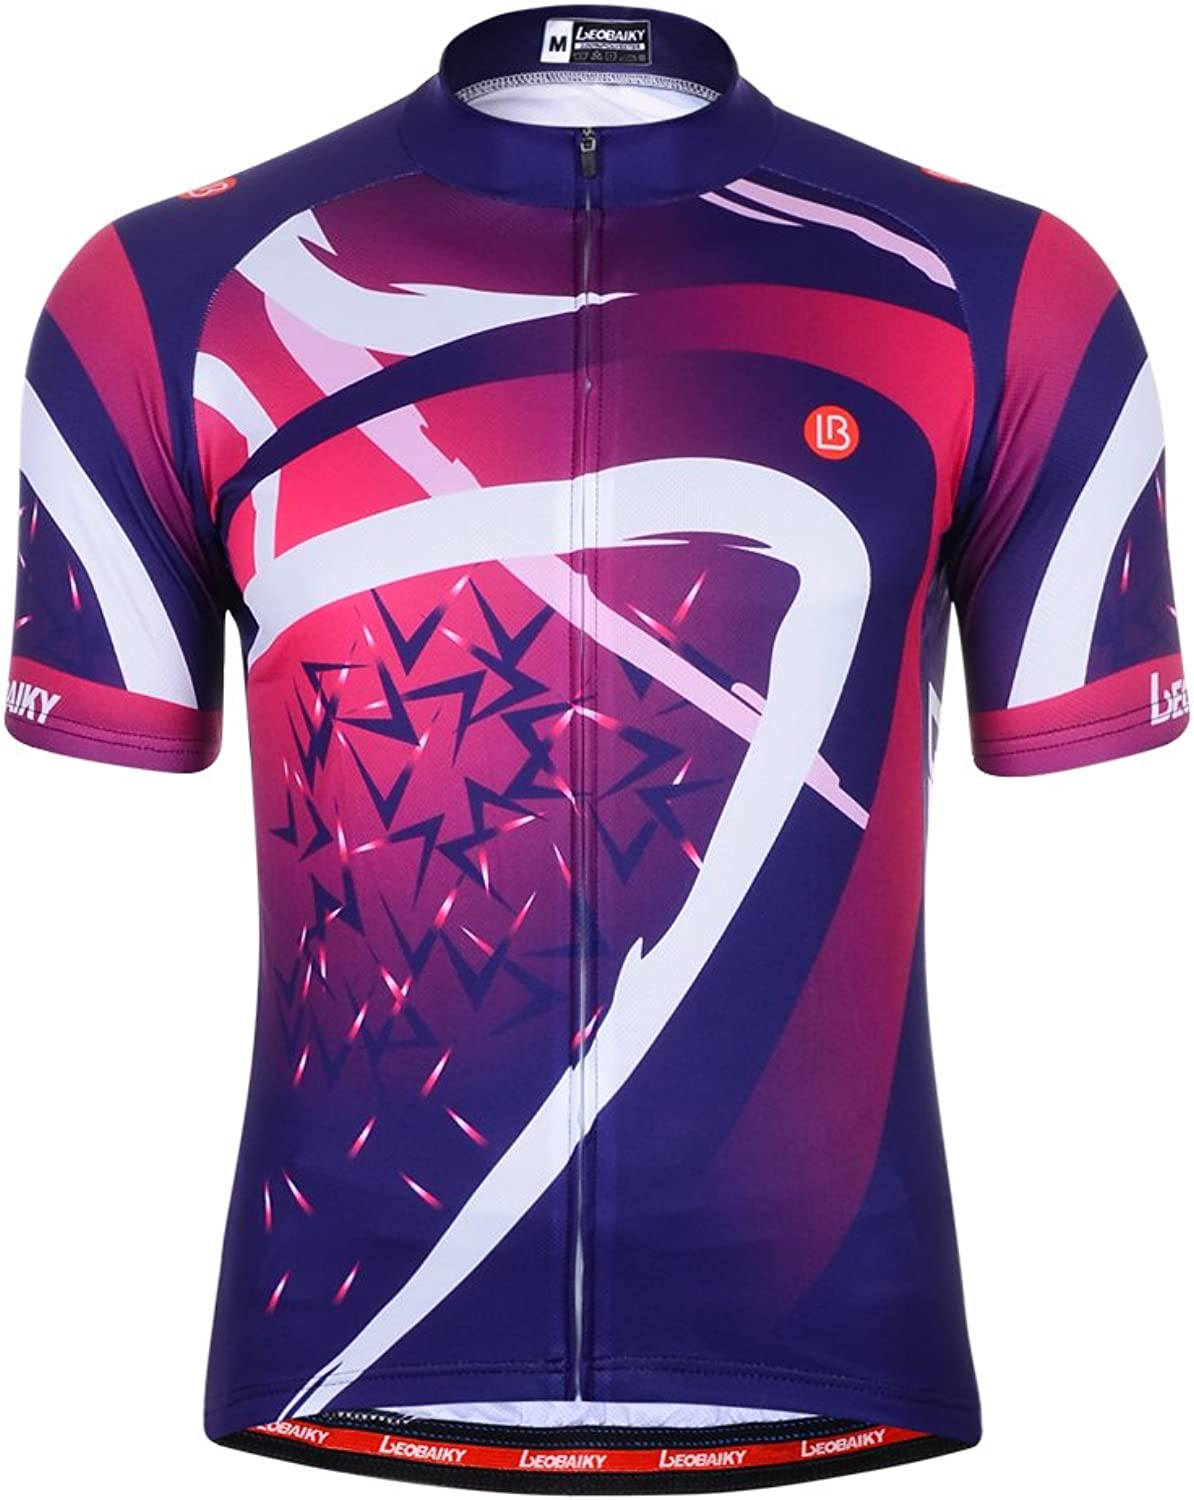 ELEPHANT DANCING Men's Summer Breathable Cycling Jersey